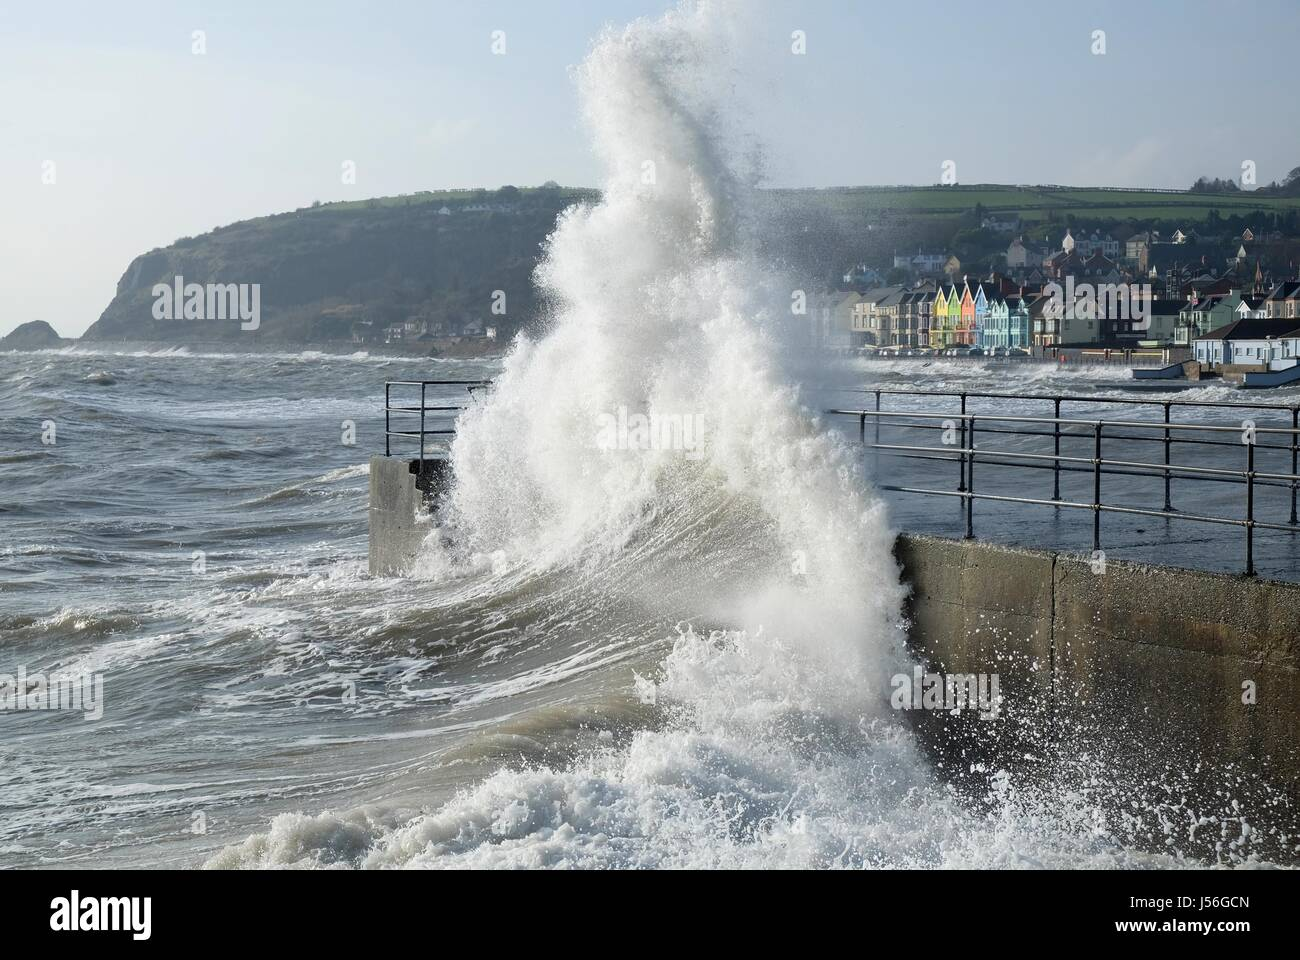 Wave breaking on pier at Whitehead, Northern Ireland - Stock Image